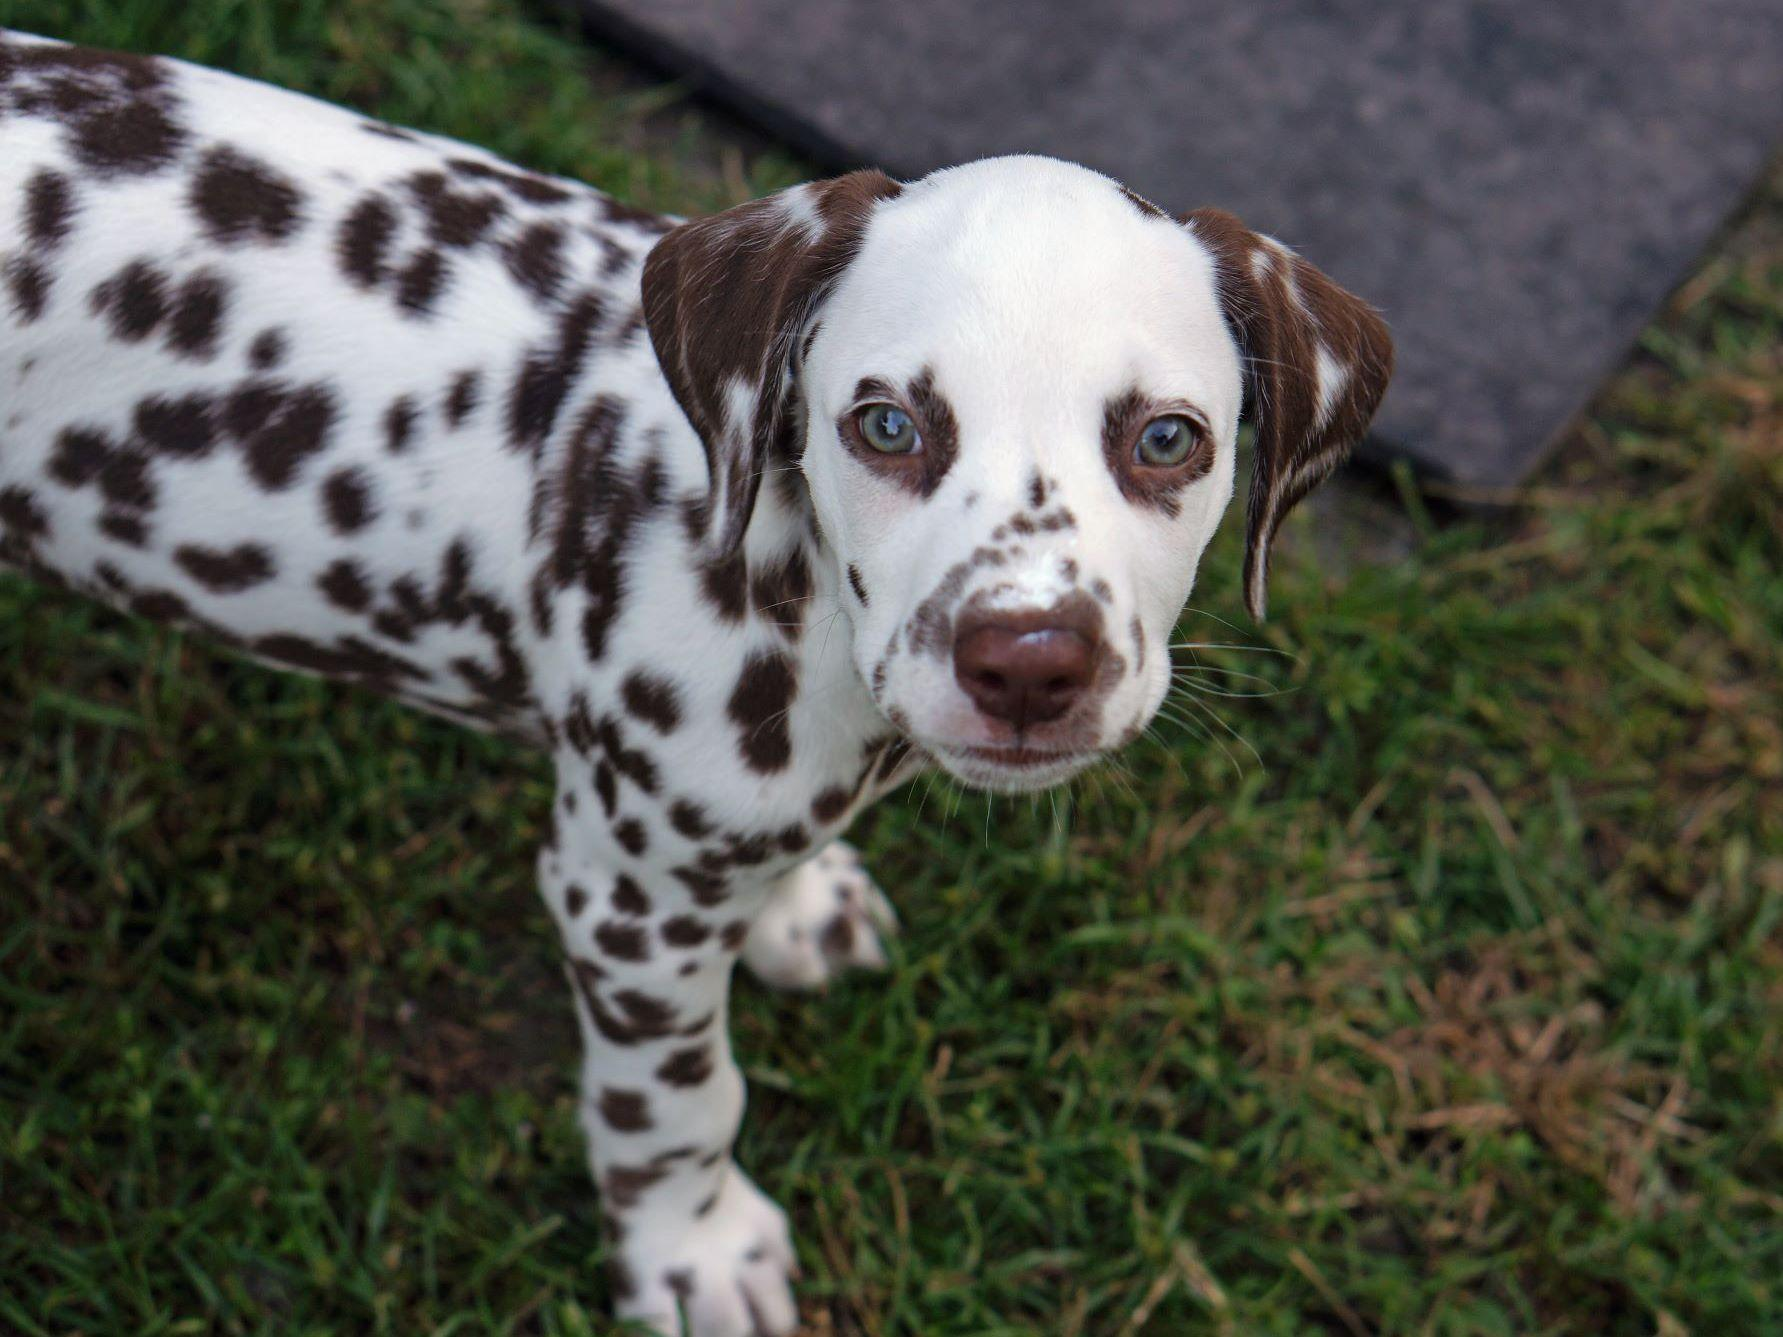 Obx Dalmatians Puppies For Sale